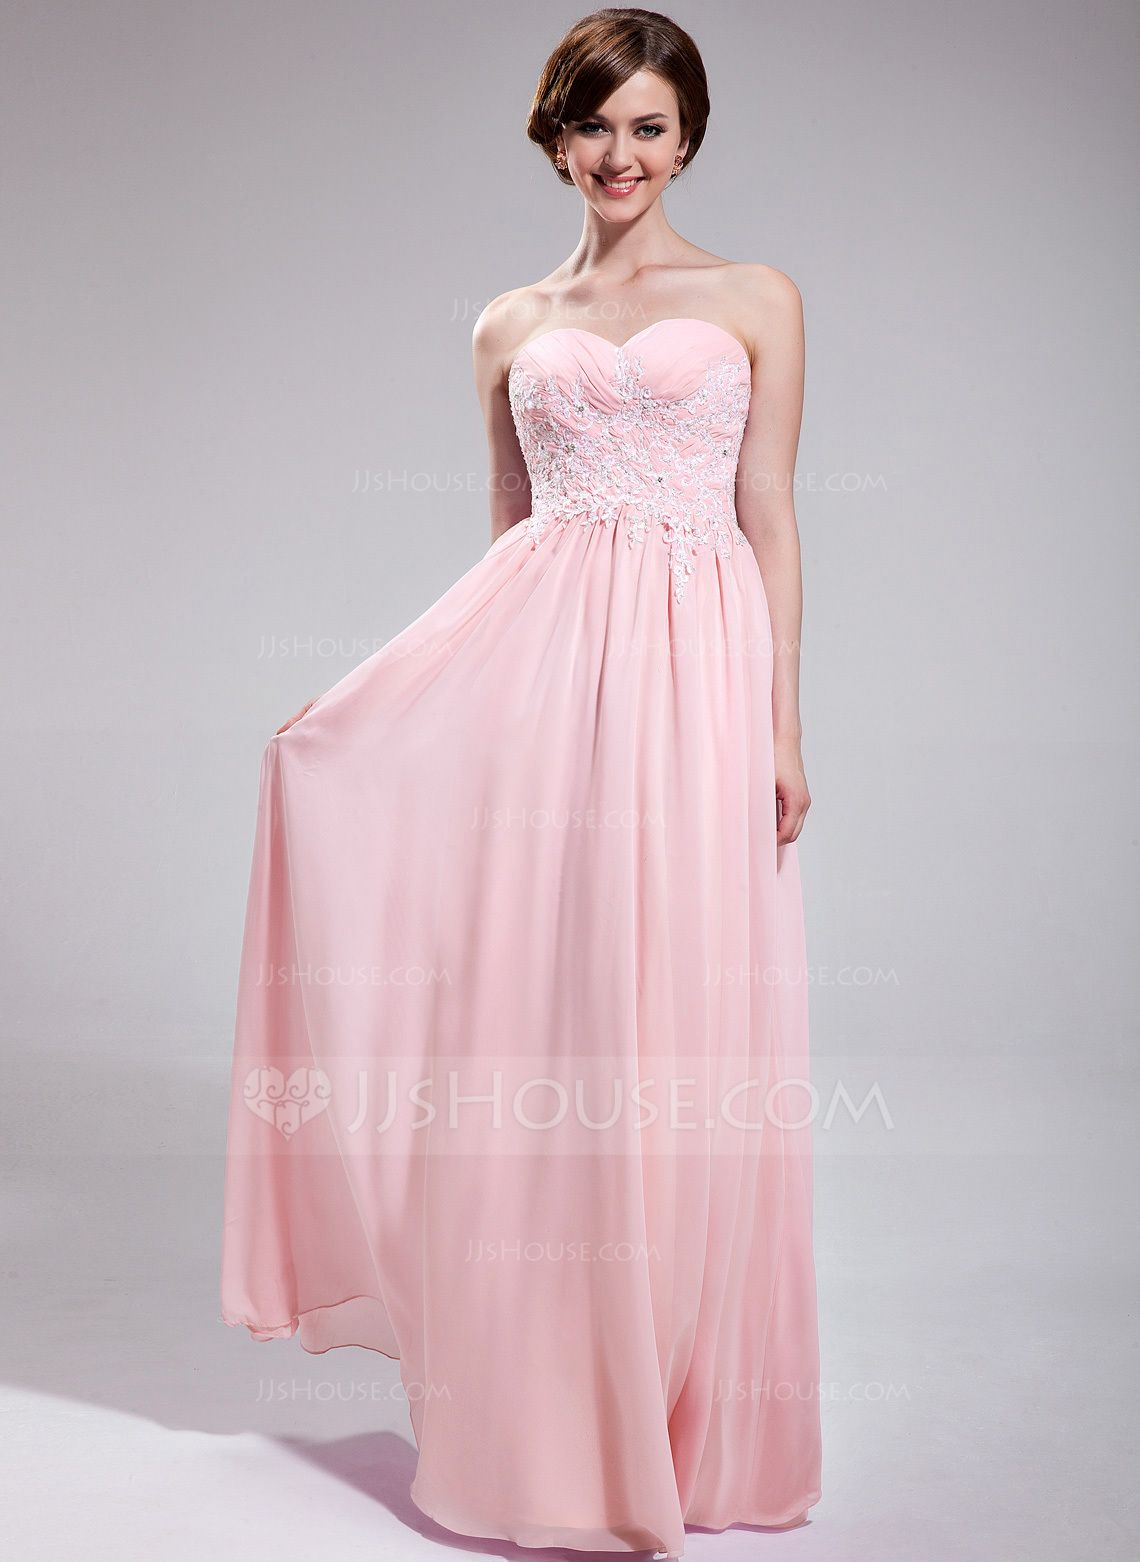 Pink JJ\'s House prom dress | Jodies formal dress ideas | Pinterest ...